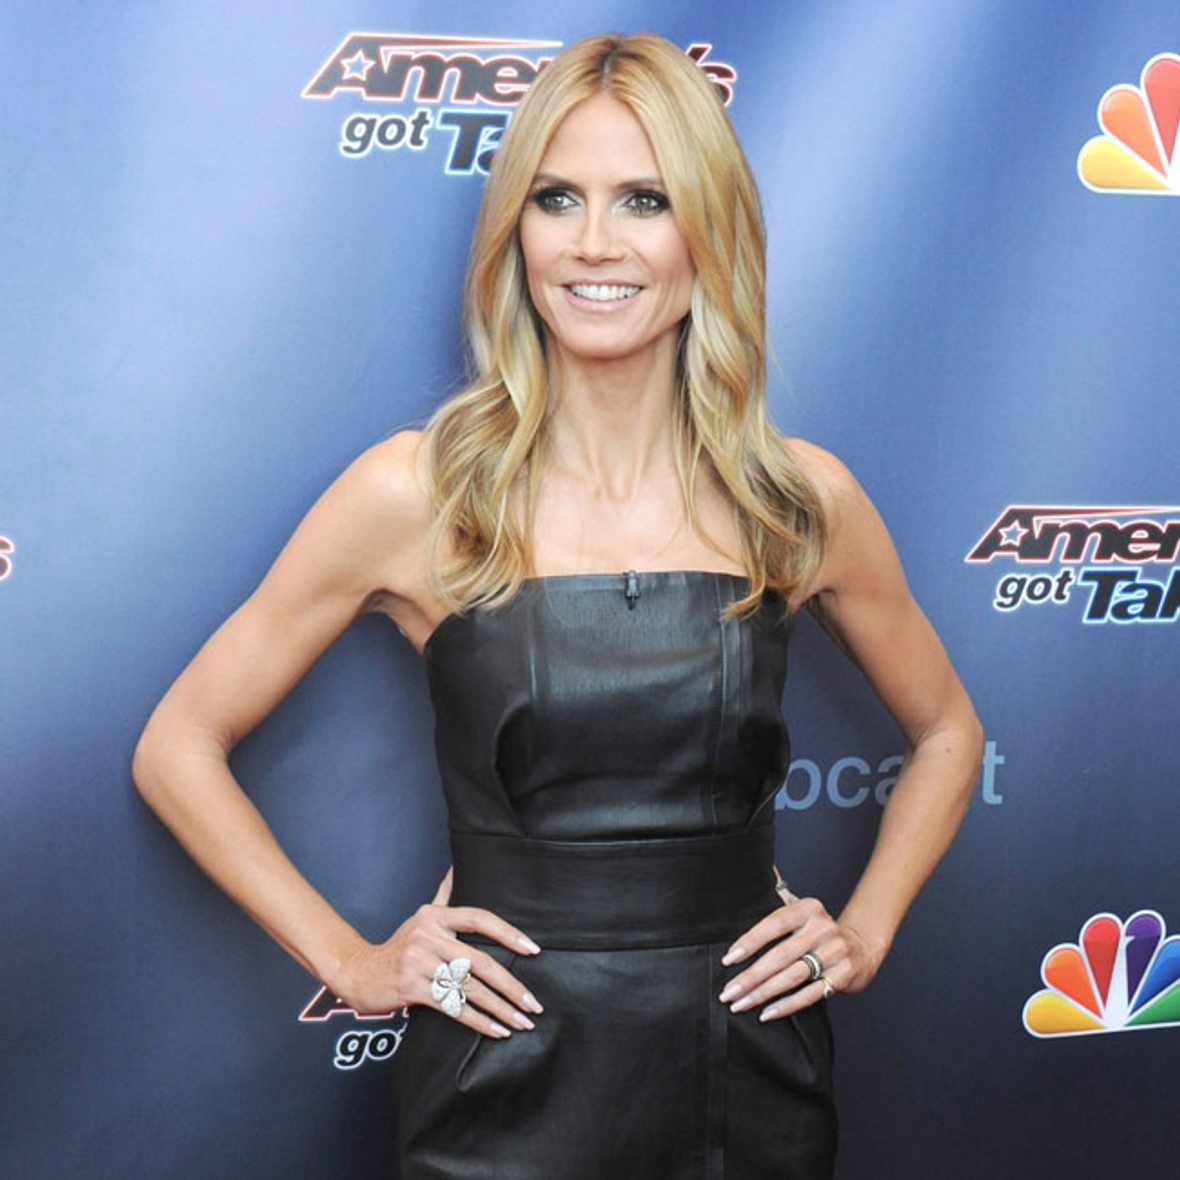 """The host and judges arrive on the red carpet for season 10 of """"America's Got Talent"""" first taped auditions with the judges, held at the New Jersey Performing Arts Center (""""NJPAC"""") in Newark, New Jersey. Pictured: Heidi Klum Ref: SPL962348 020315 Picture by: Johns PKI/Splash News Splash News and Pictures Los Angeles: 310-821-2666 New York: […]"""